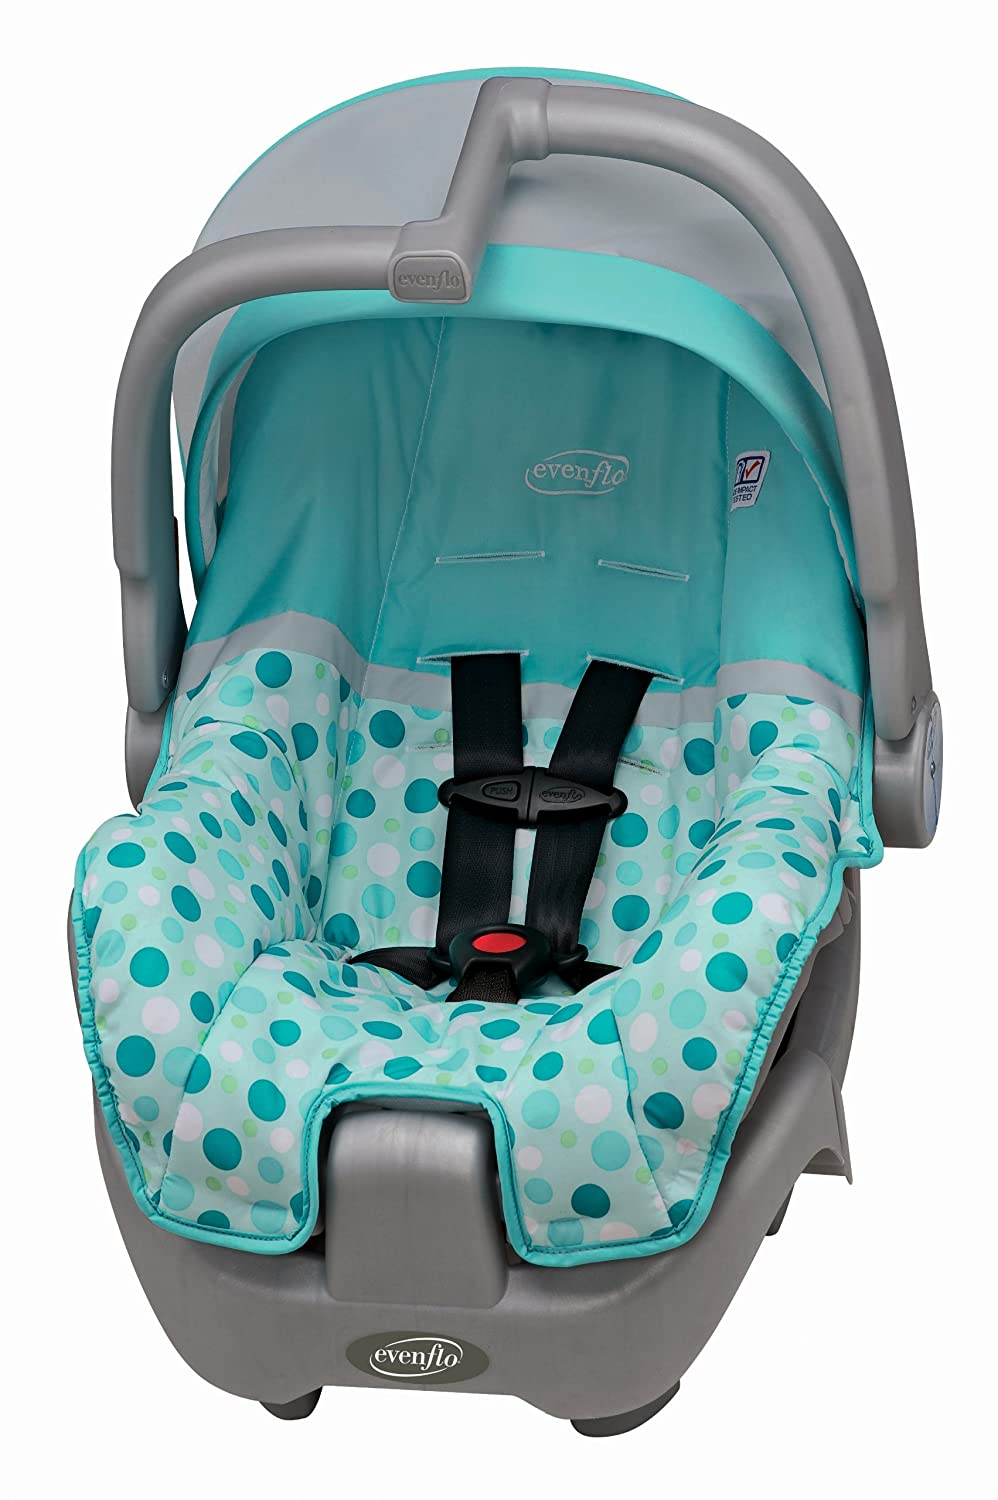 evenflo discovery 5 infant car seat recall. Black Bedroom Furniture Sets. Home Design Ideas